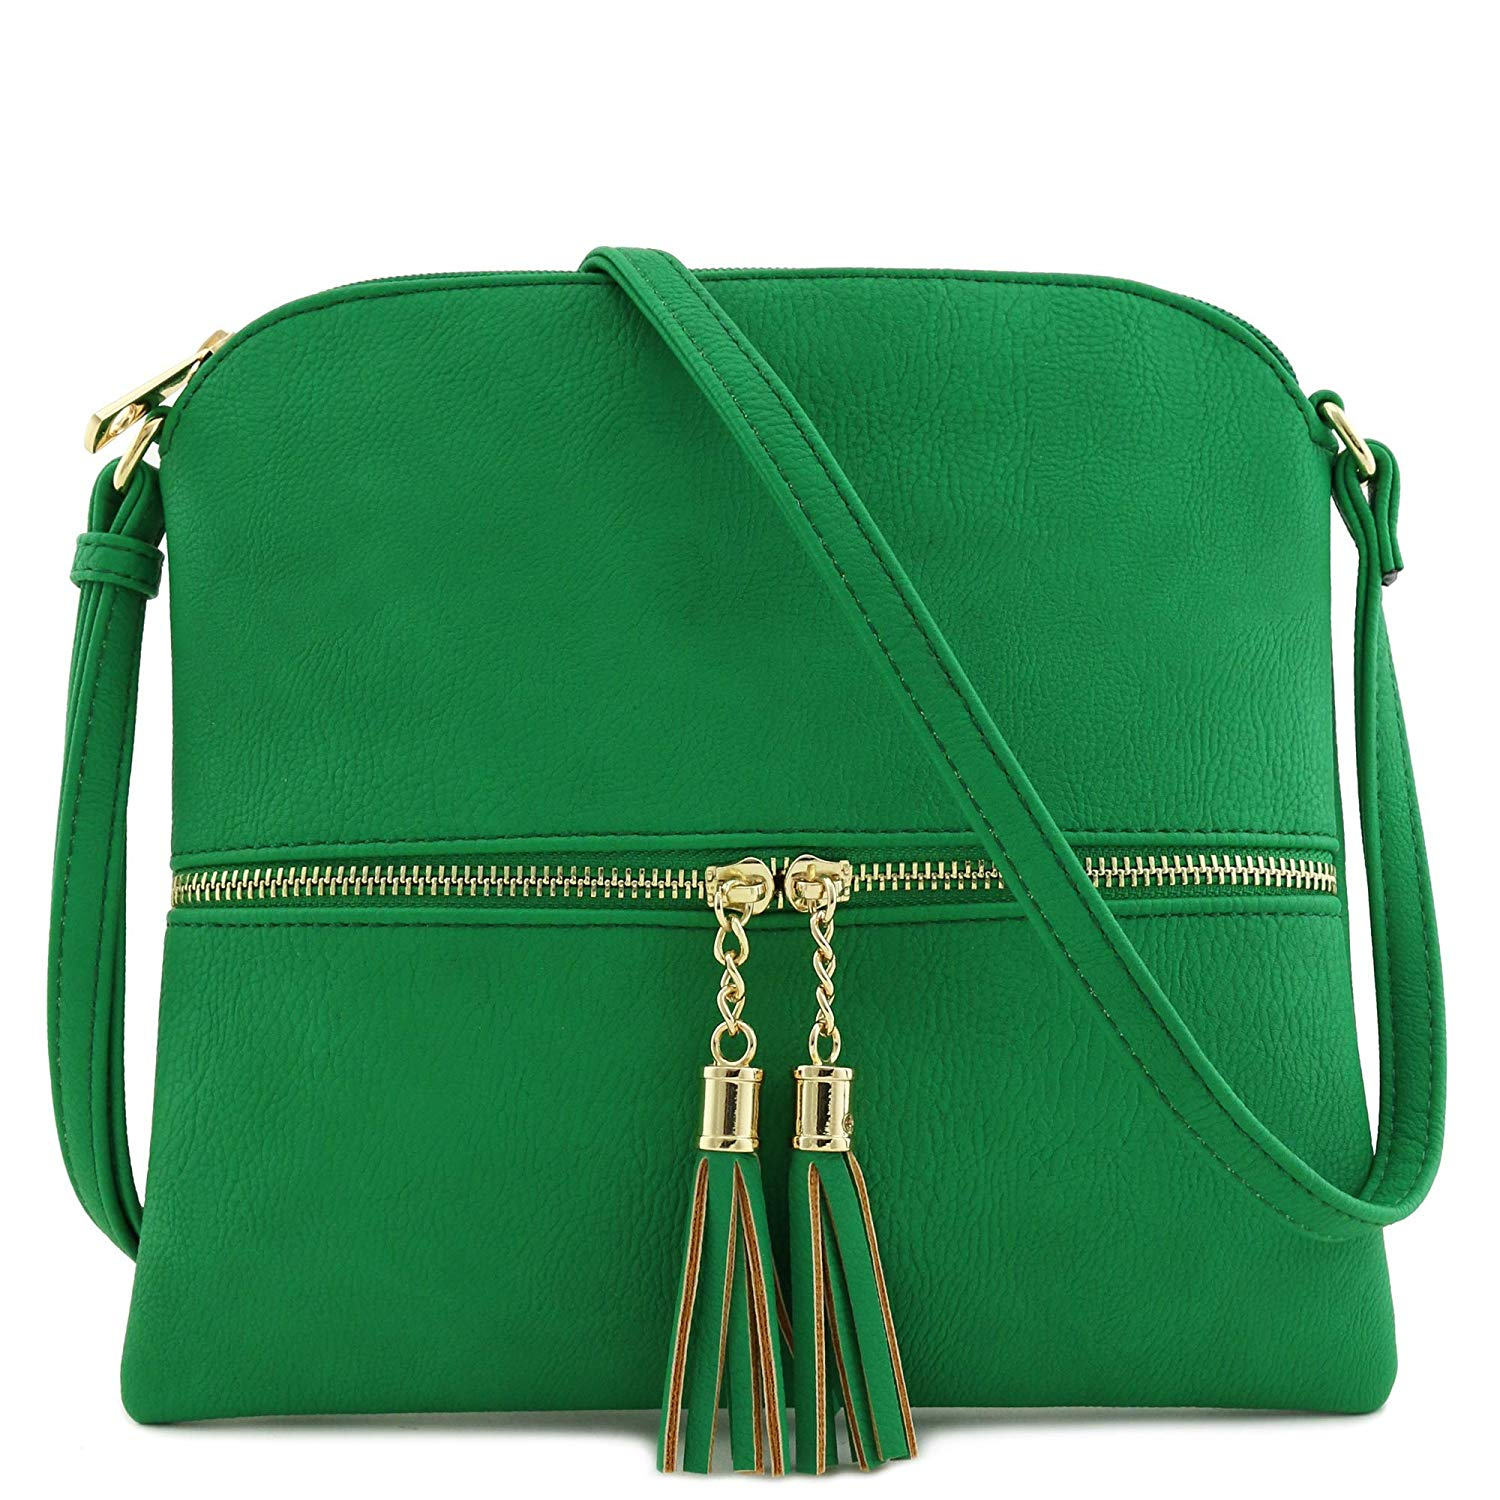 Review of Lightweight Medium Crossbody Bag with Tassel by Deluxity